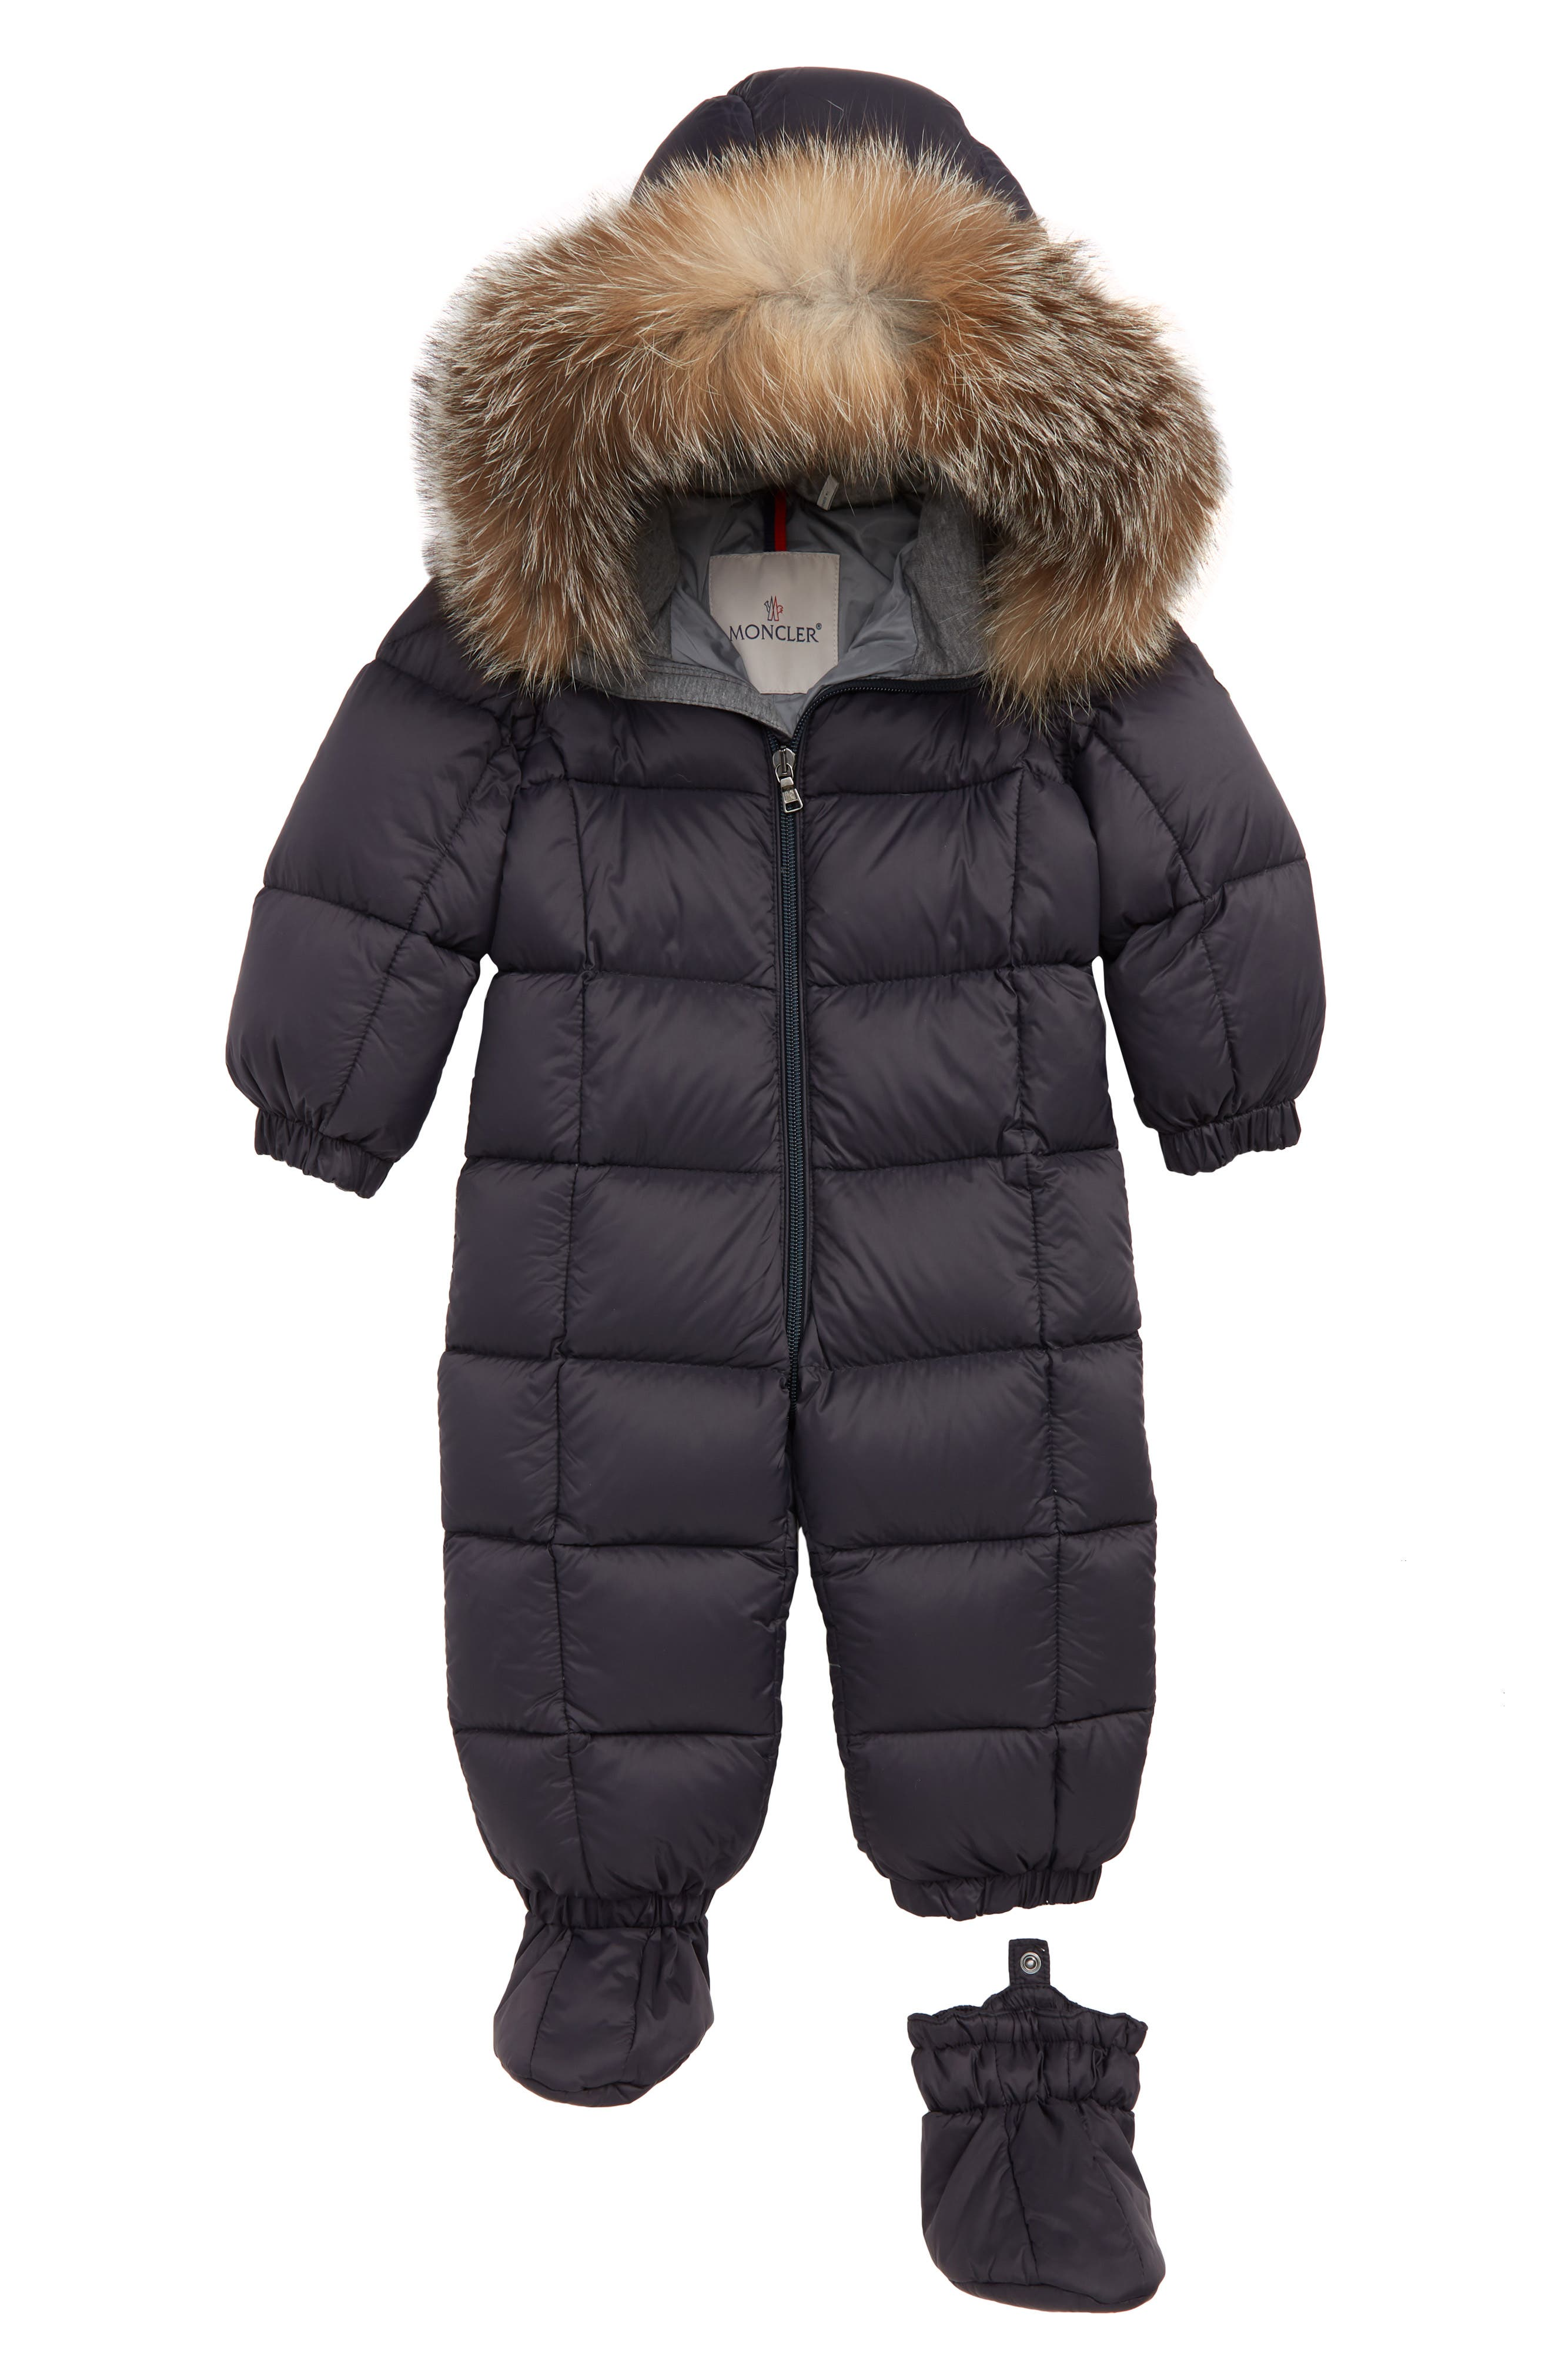 MONCLER, Jean Down Bunting with Genuine Fox Fur Trim, Main thumbnail 1, color, NAVY